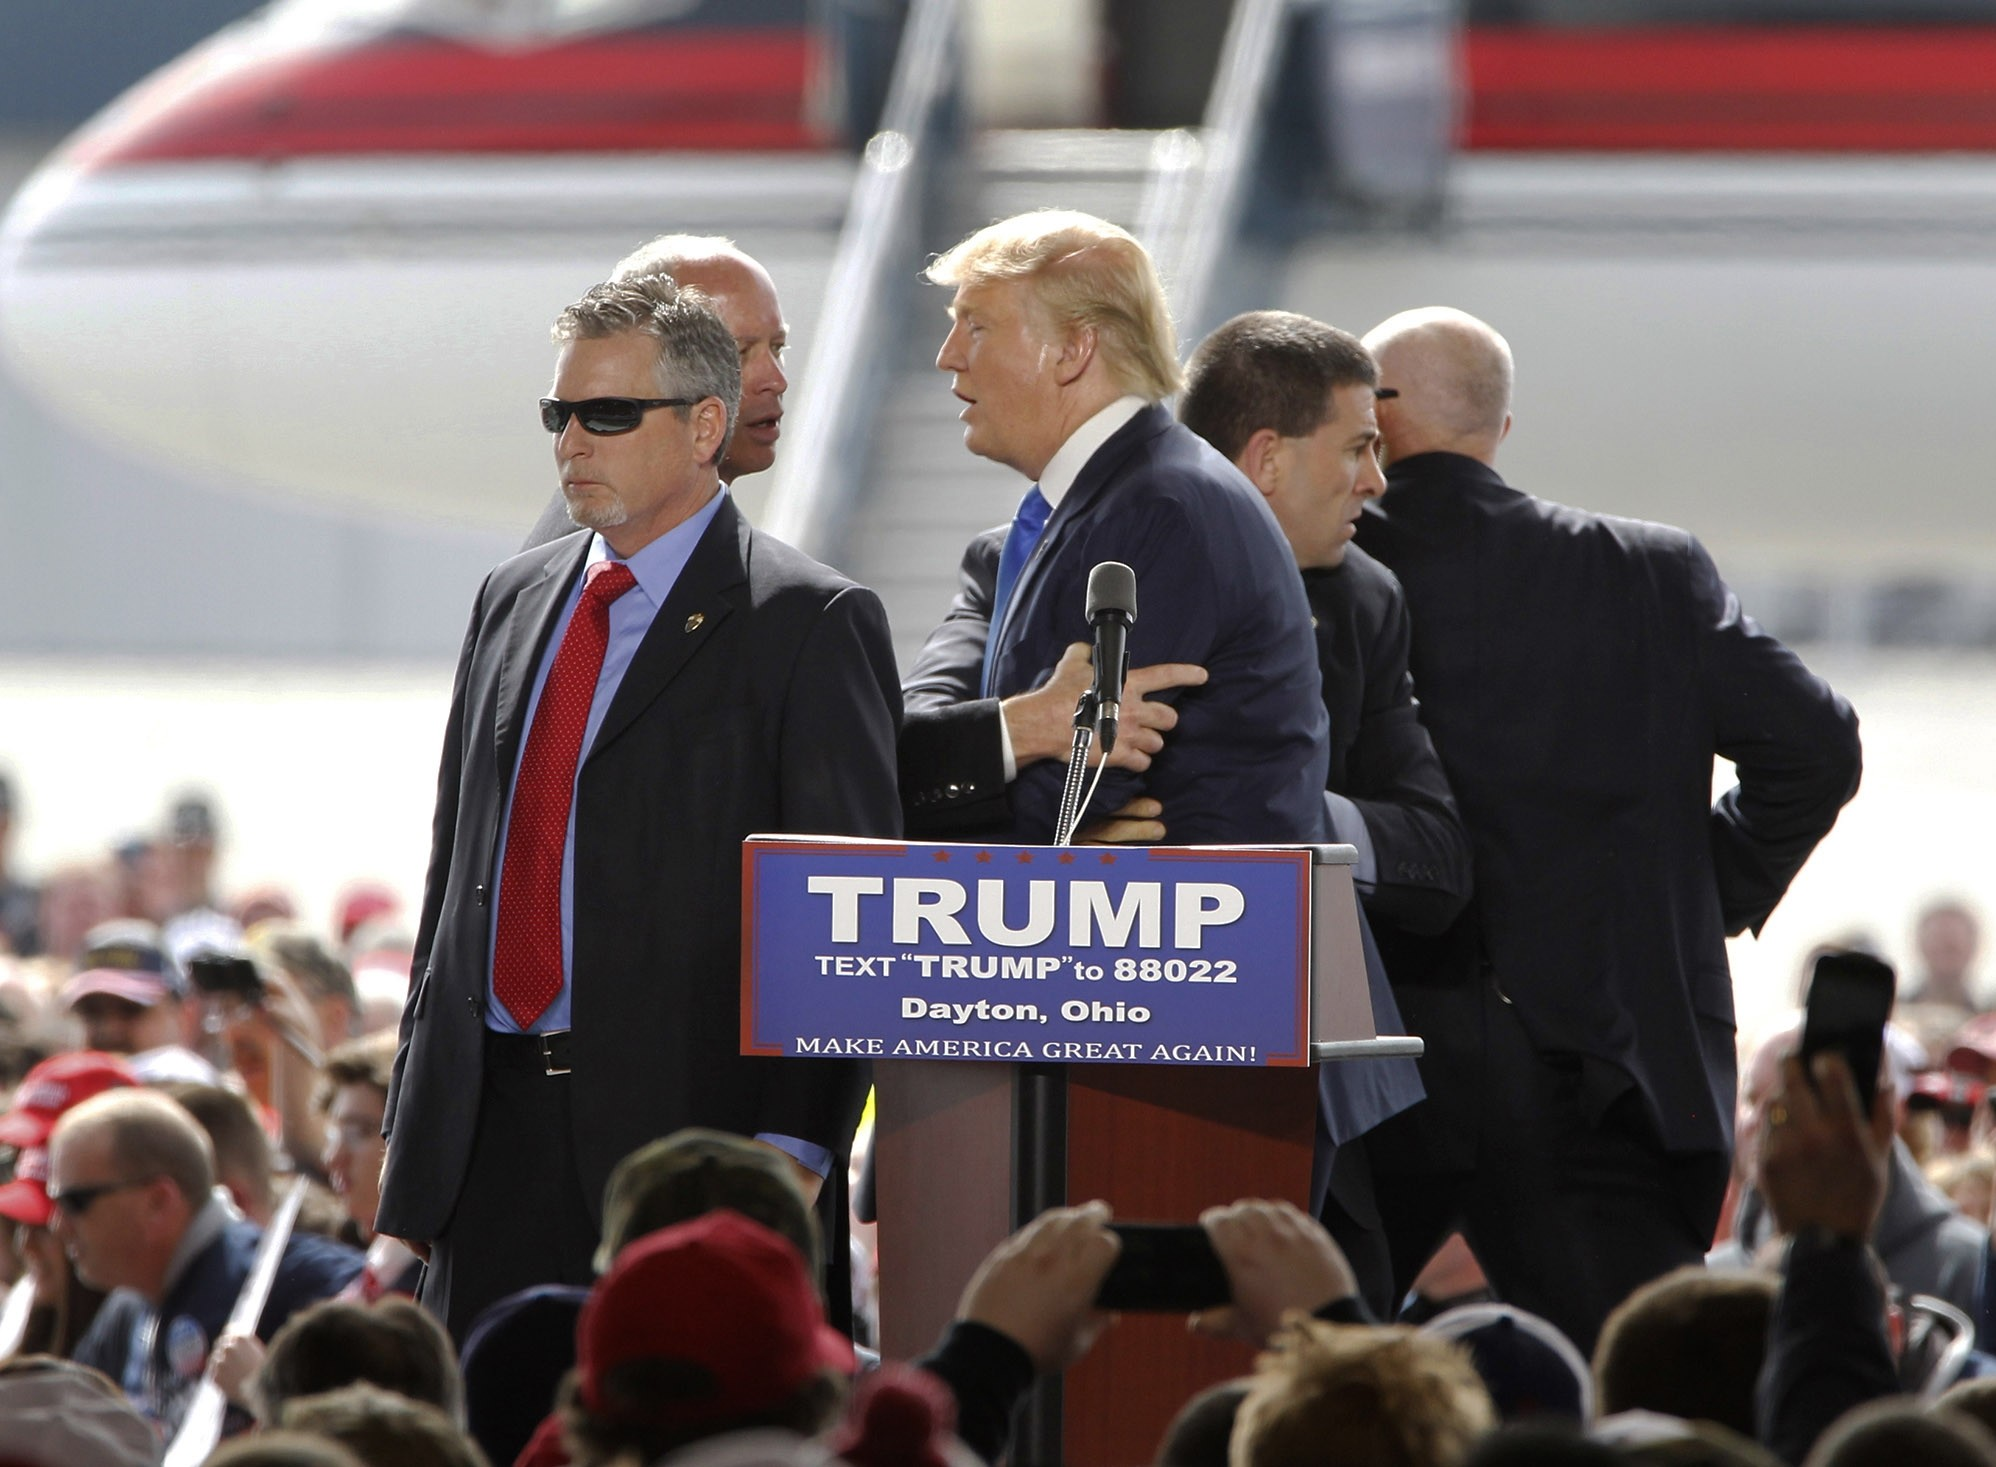 Security surround GOP presidential candidate Donald Trump after a man rushed the stage during a campaign rally at Dayton International Airport in Vandalia, Ohio. (AP Photo)